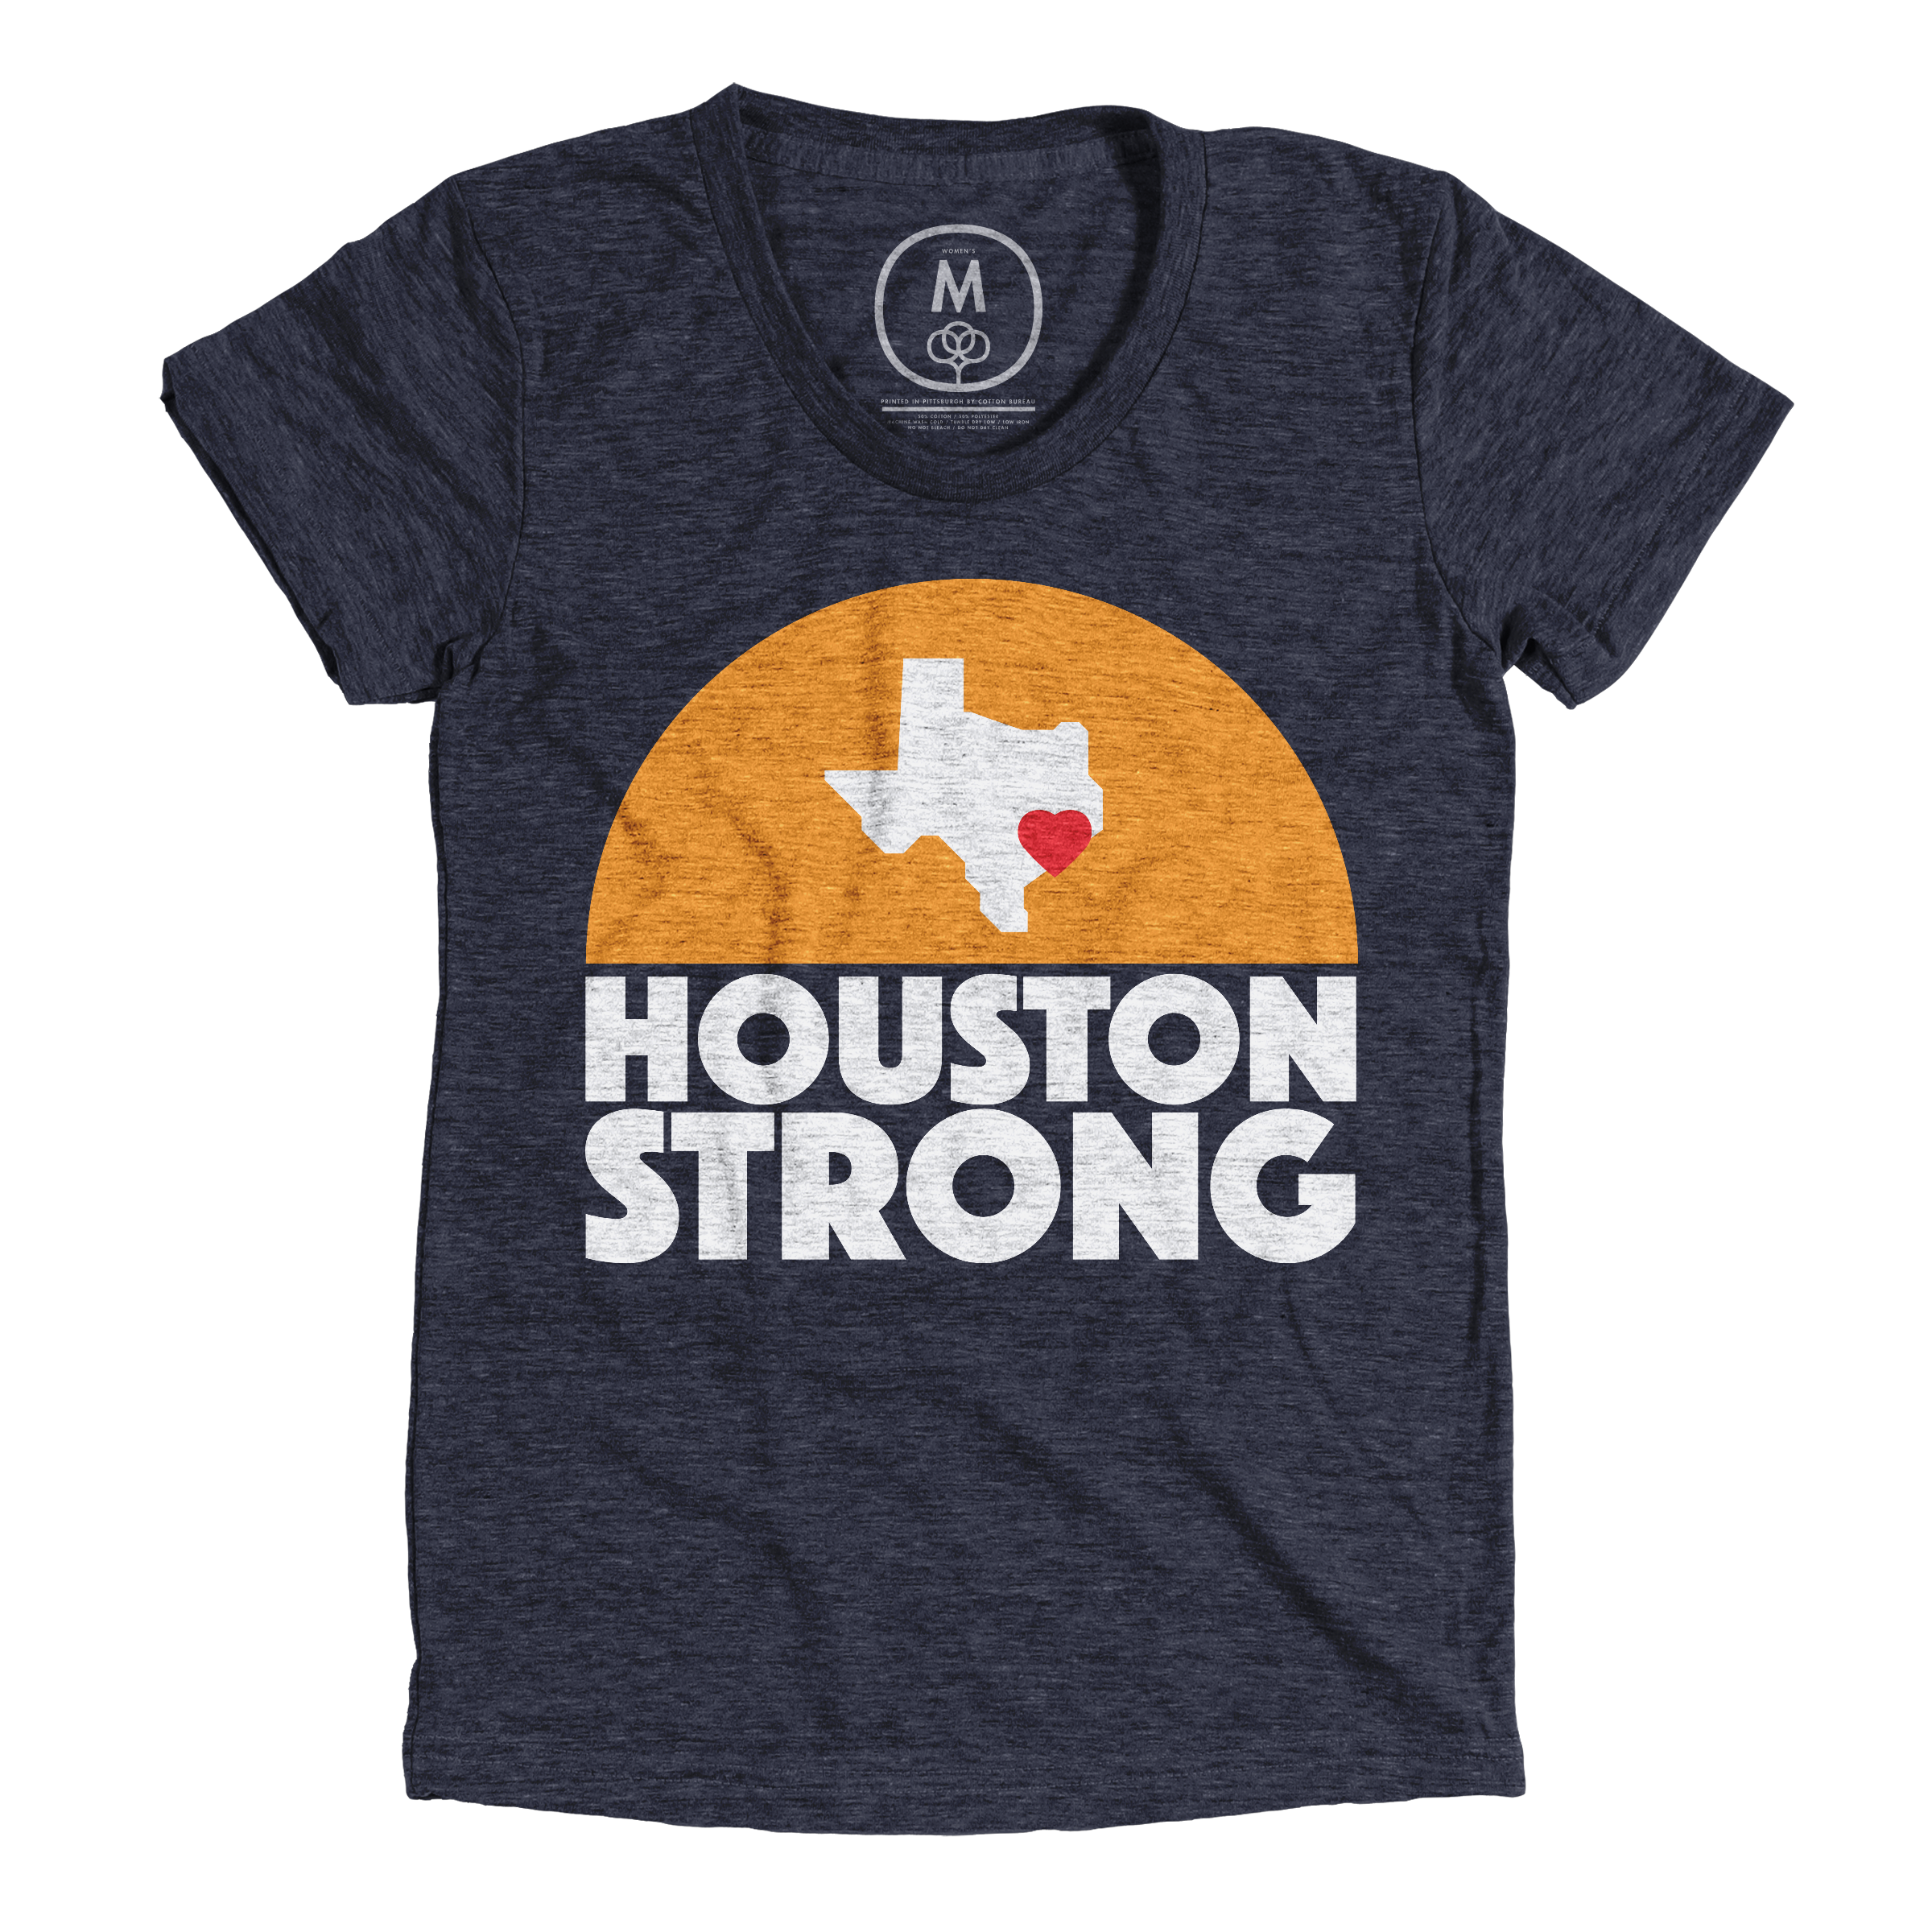 Houston Strong Vintage Navy (Women's)